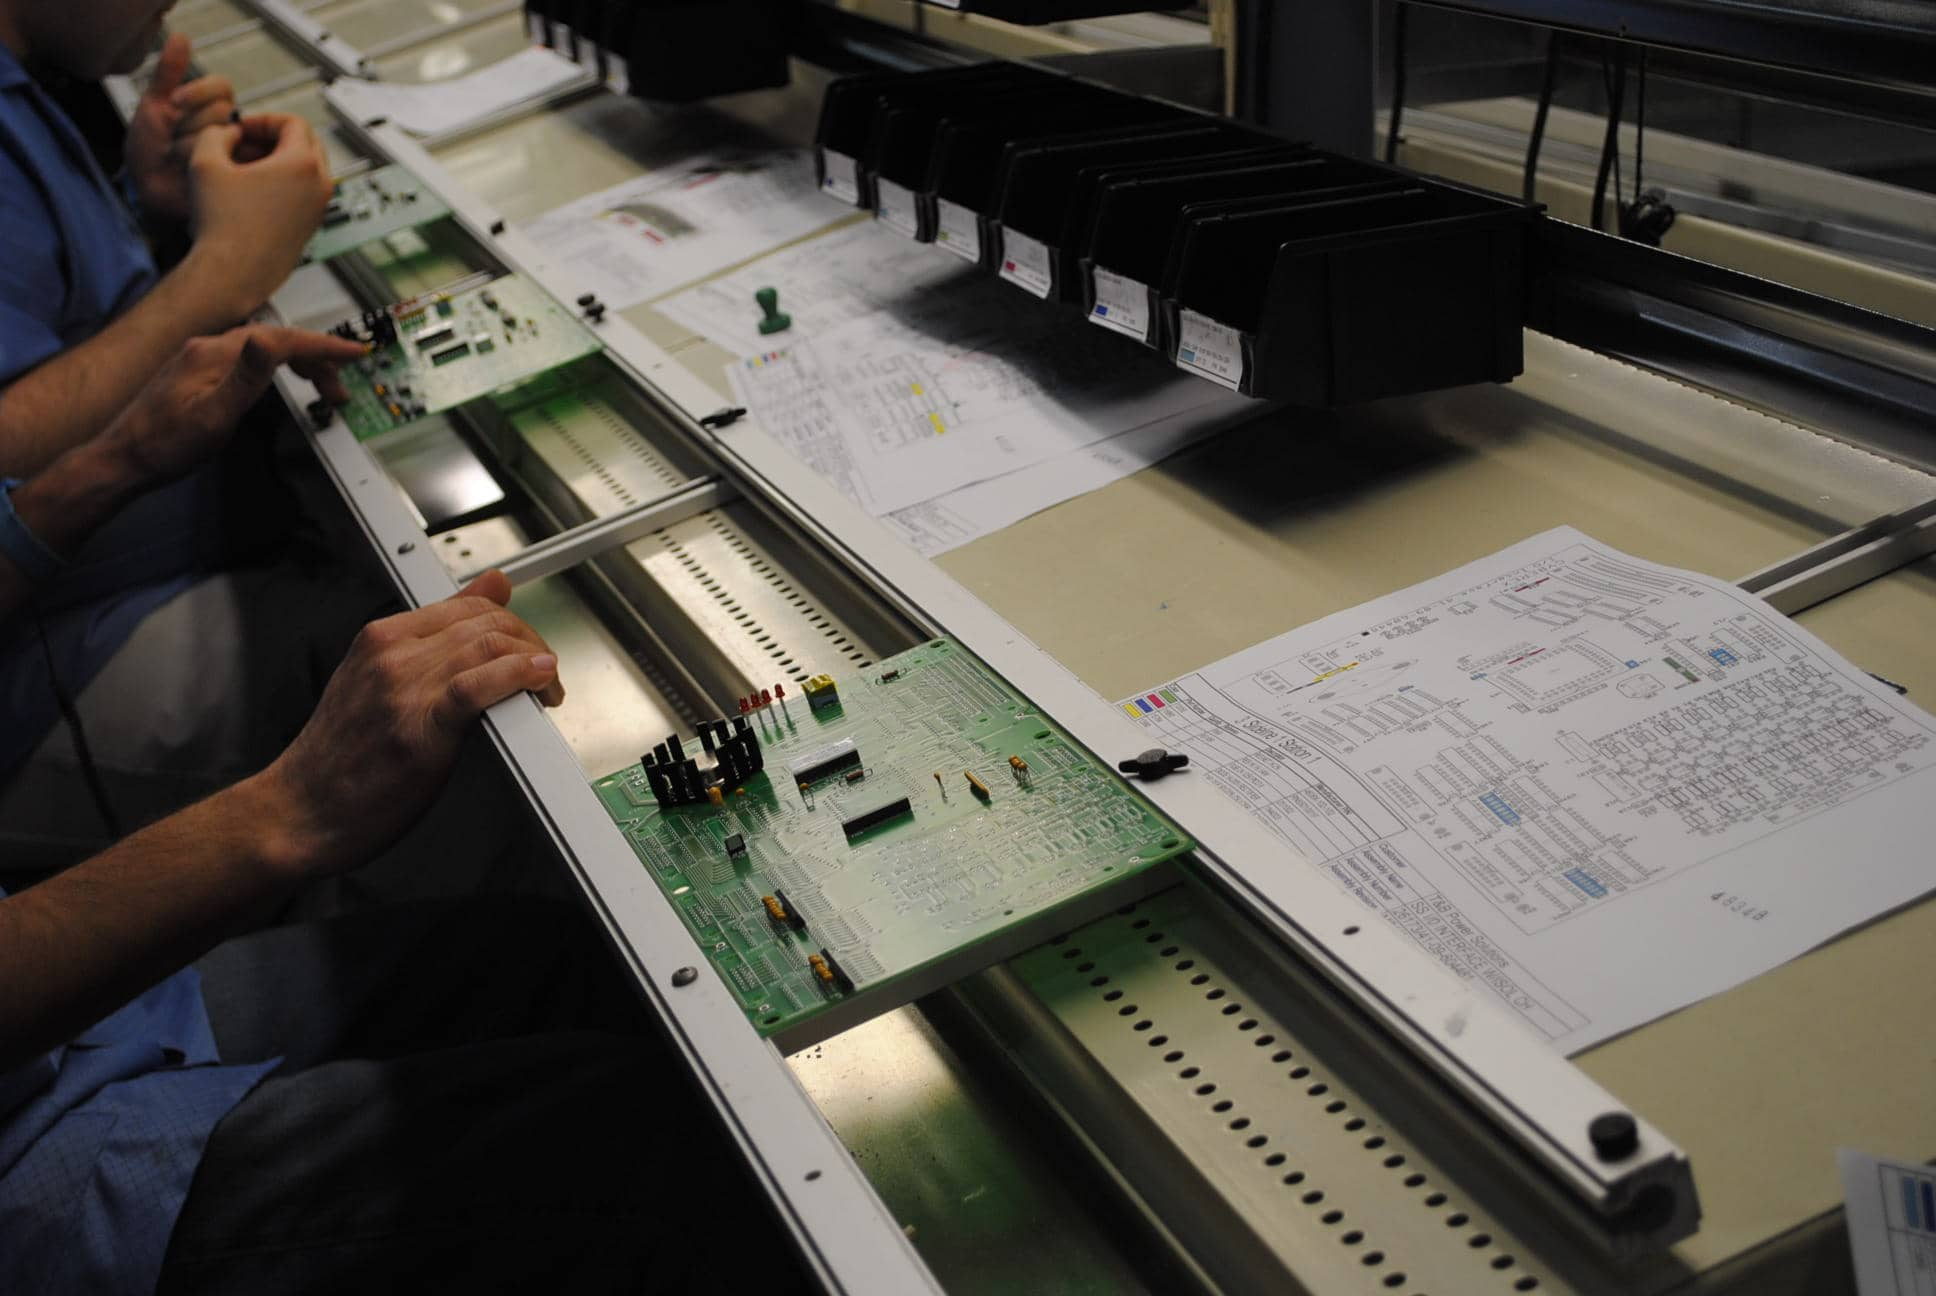 Picture of circuit board assembly by RBB employees